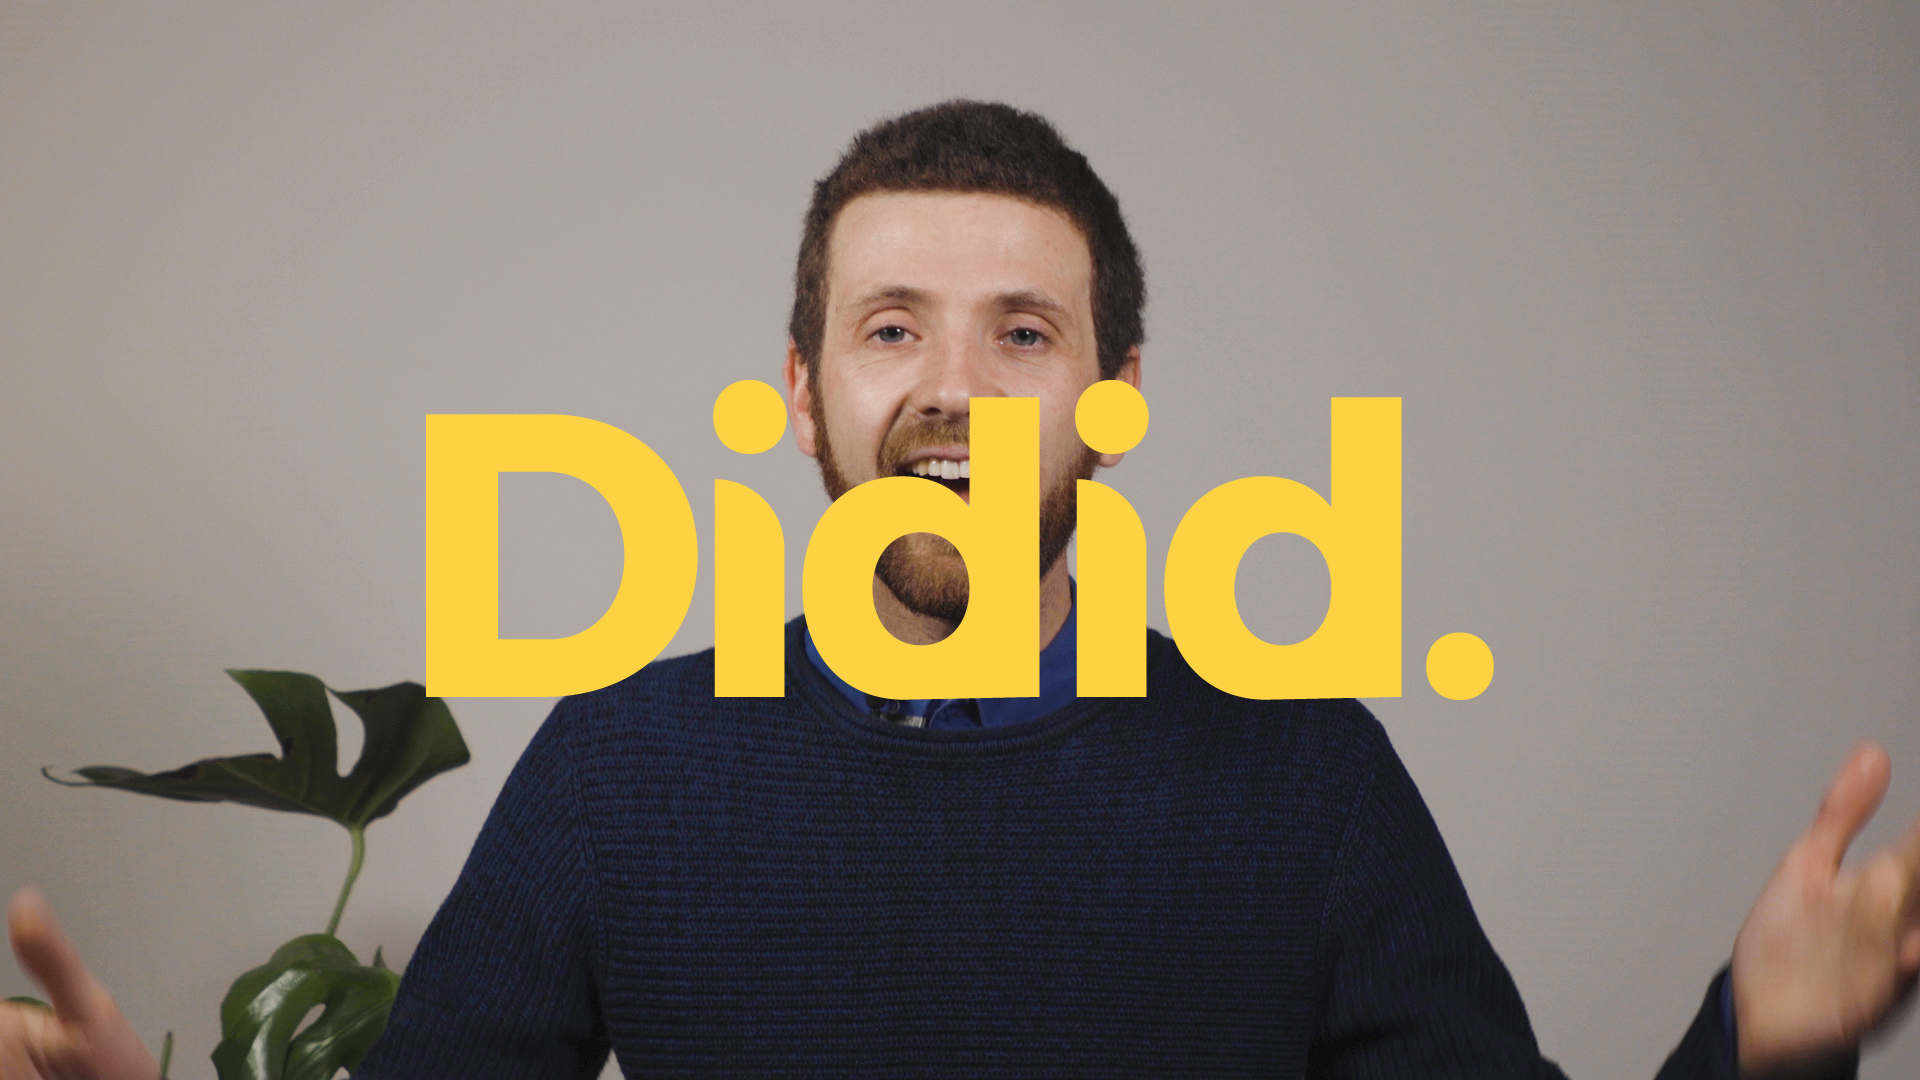 Announcing Didid: The app that helps your dreams come true